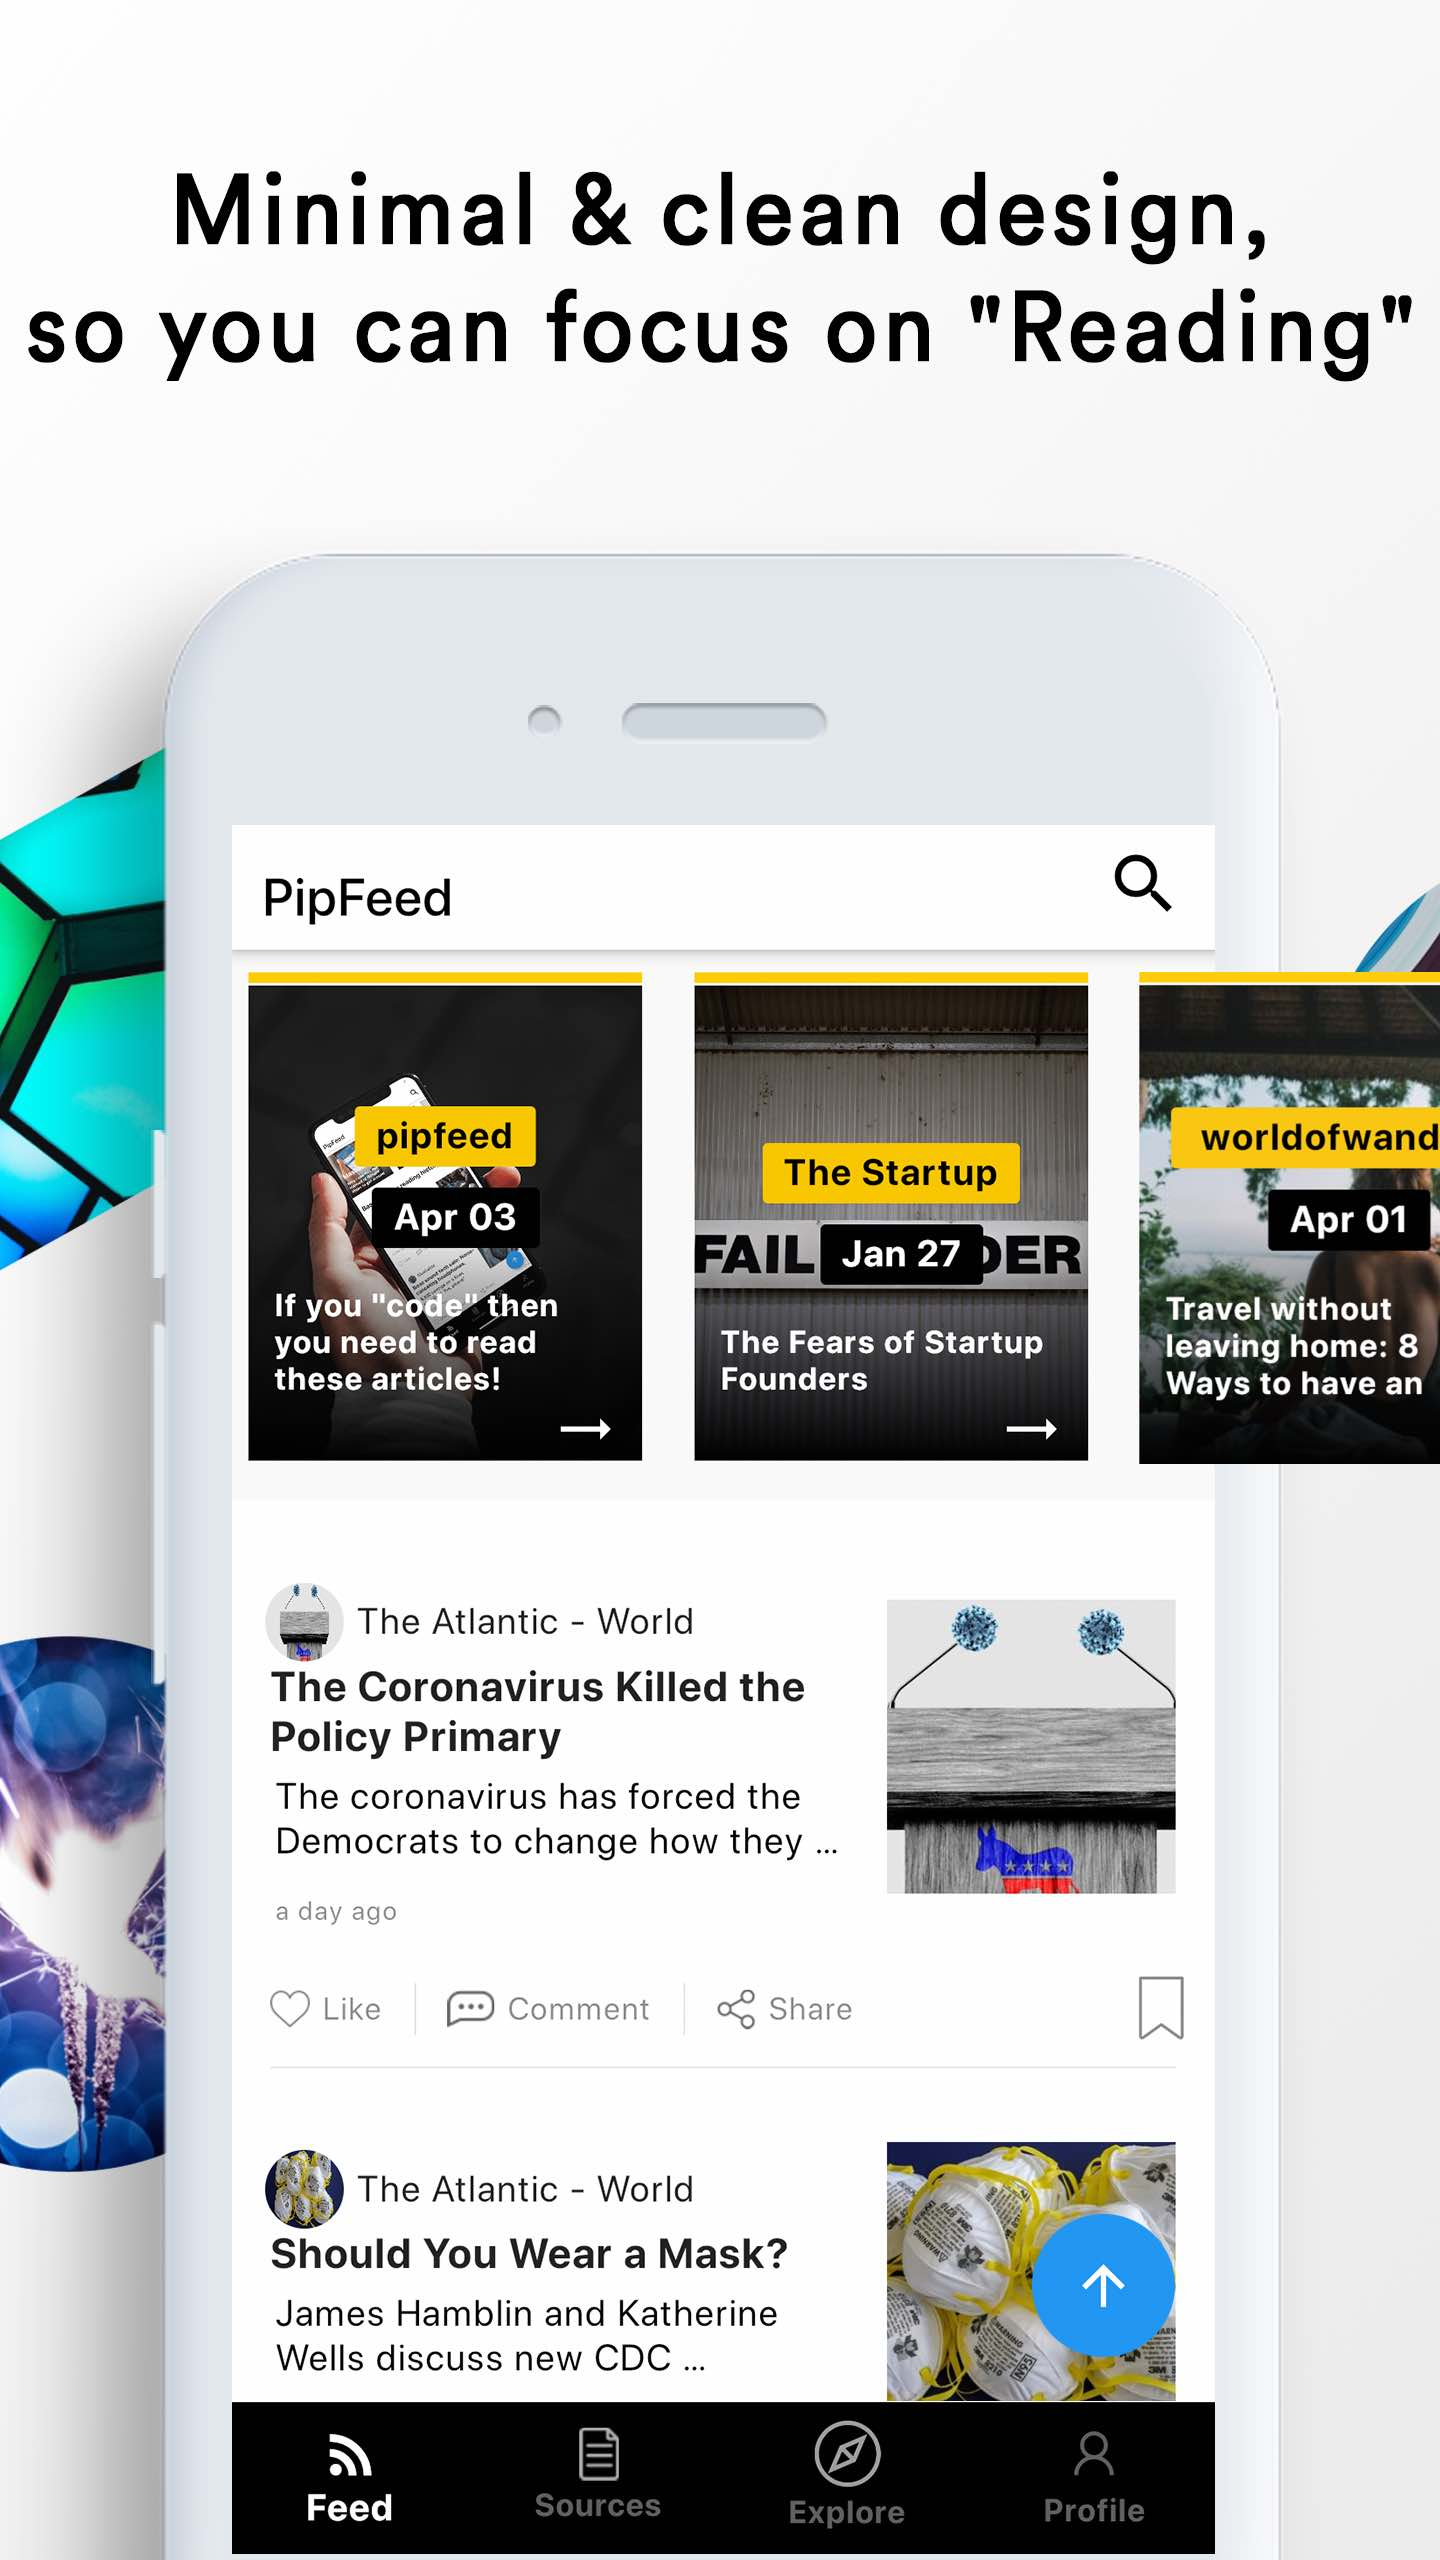 PipFeed